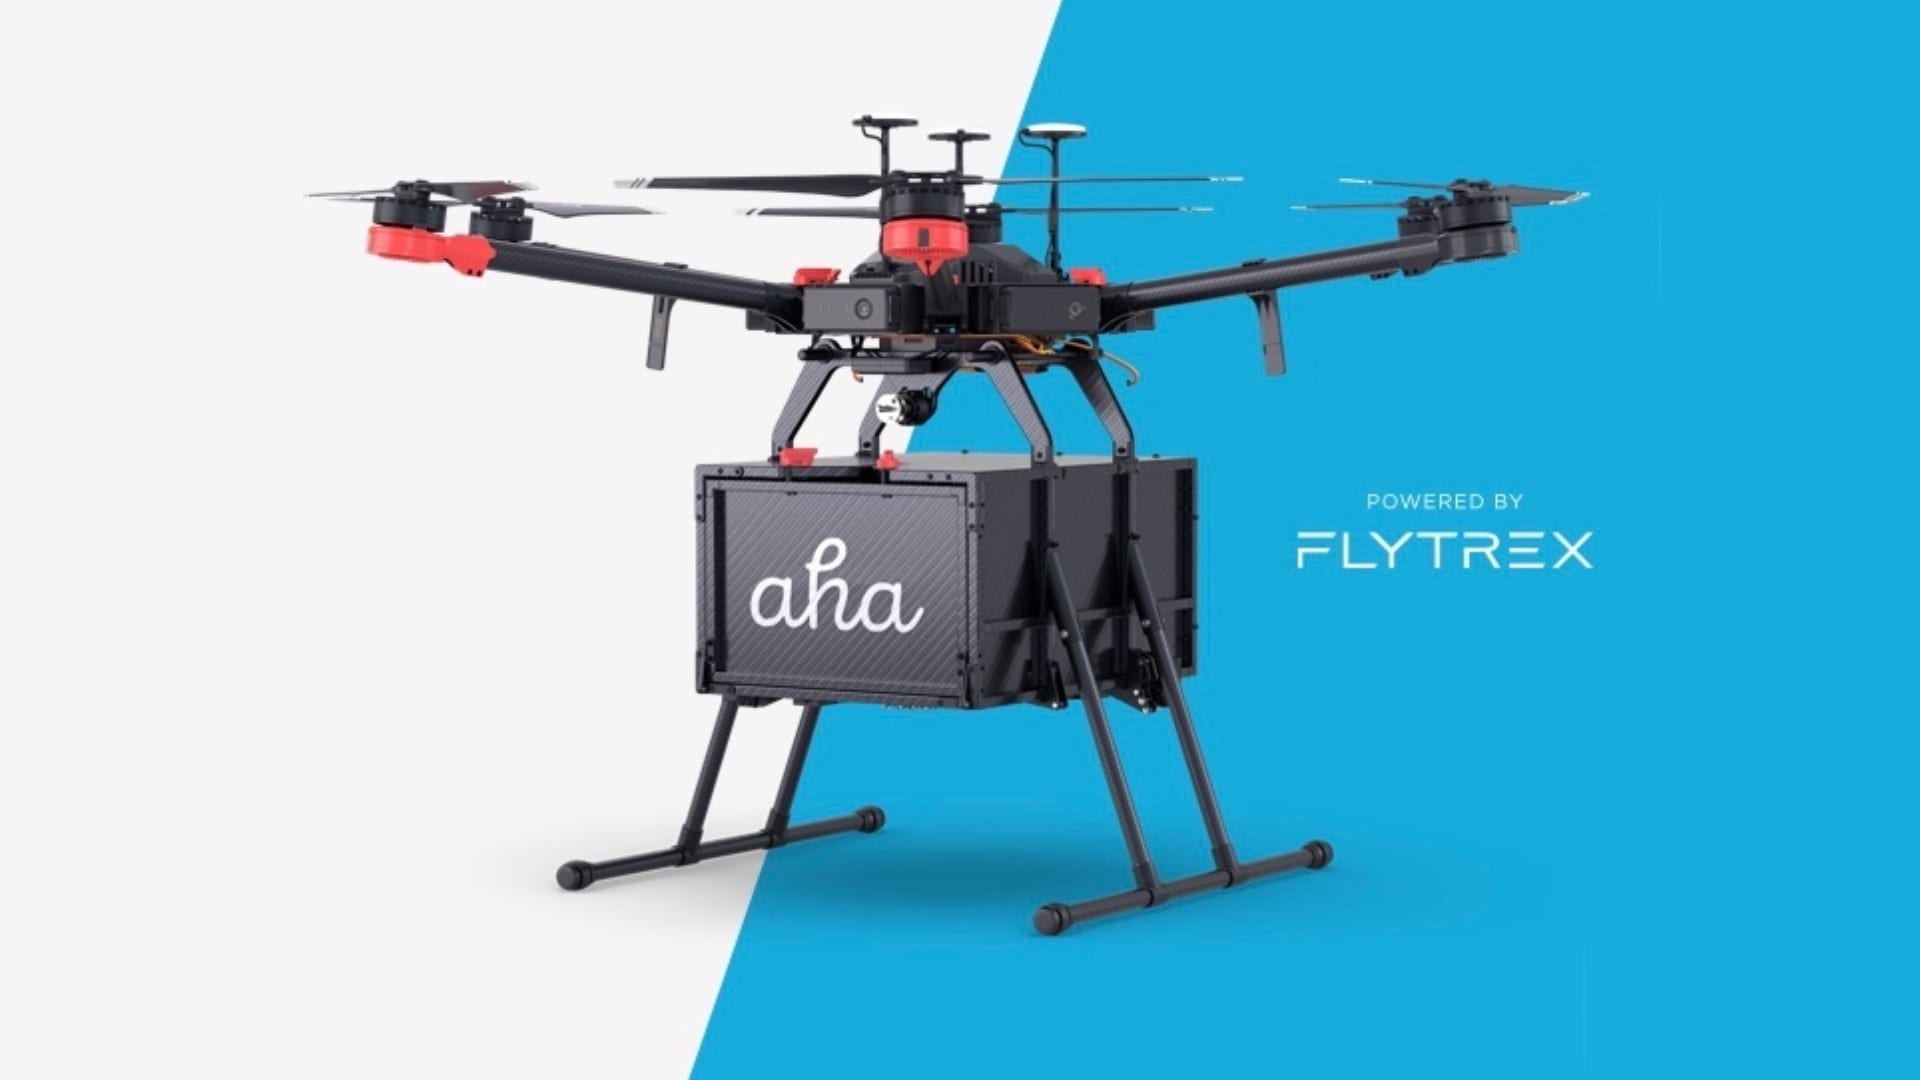 Aha delivers coffee by drone in Reykjavik, Iceland